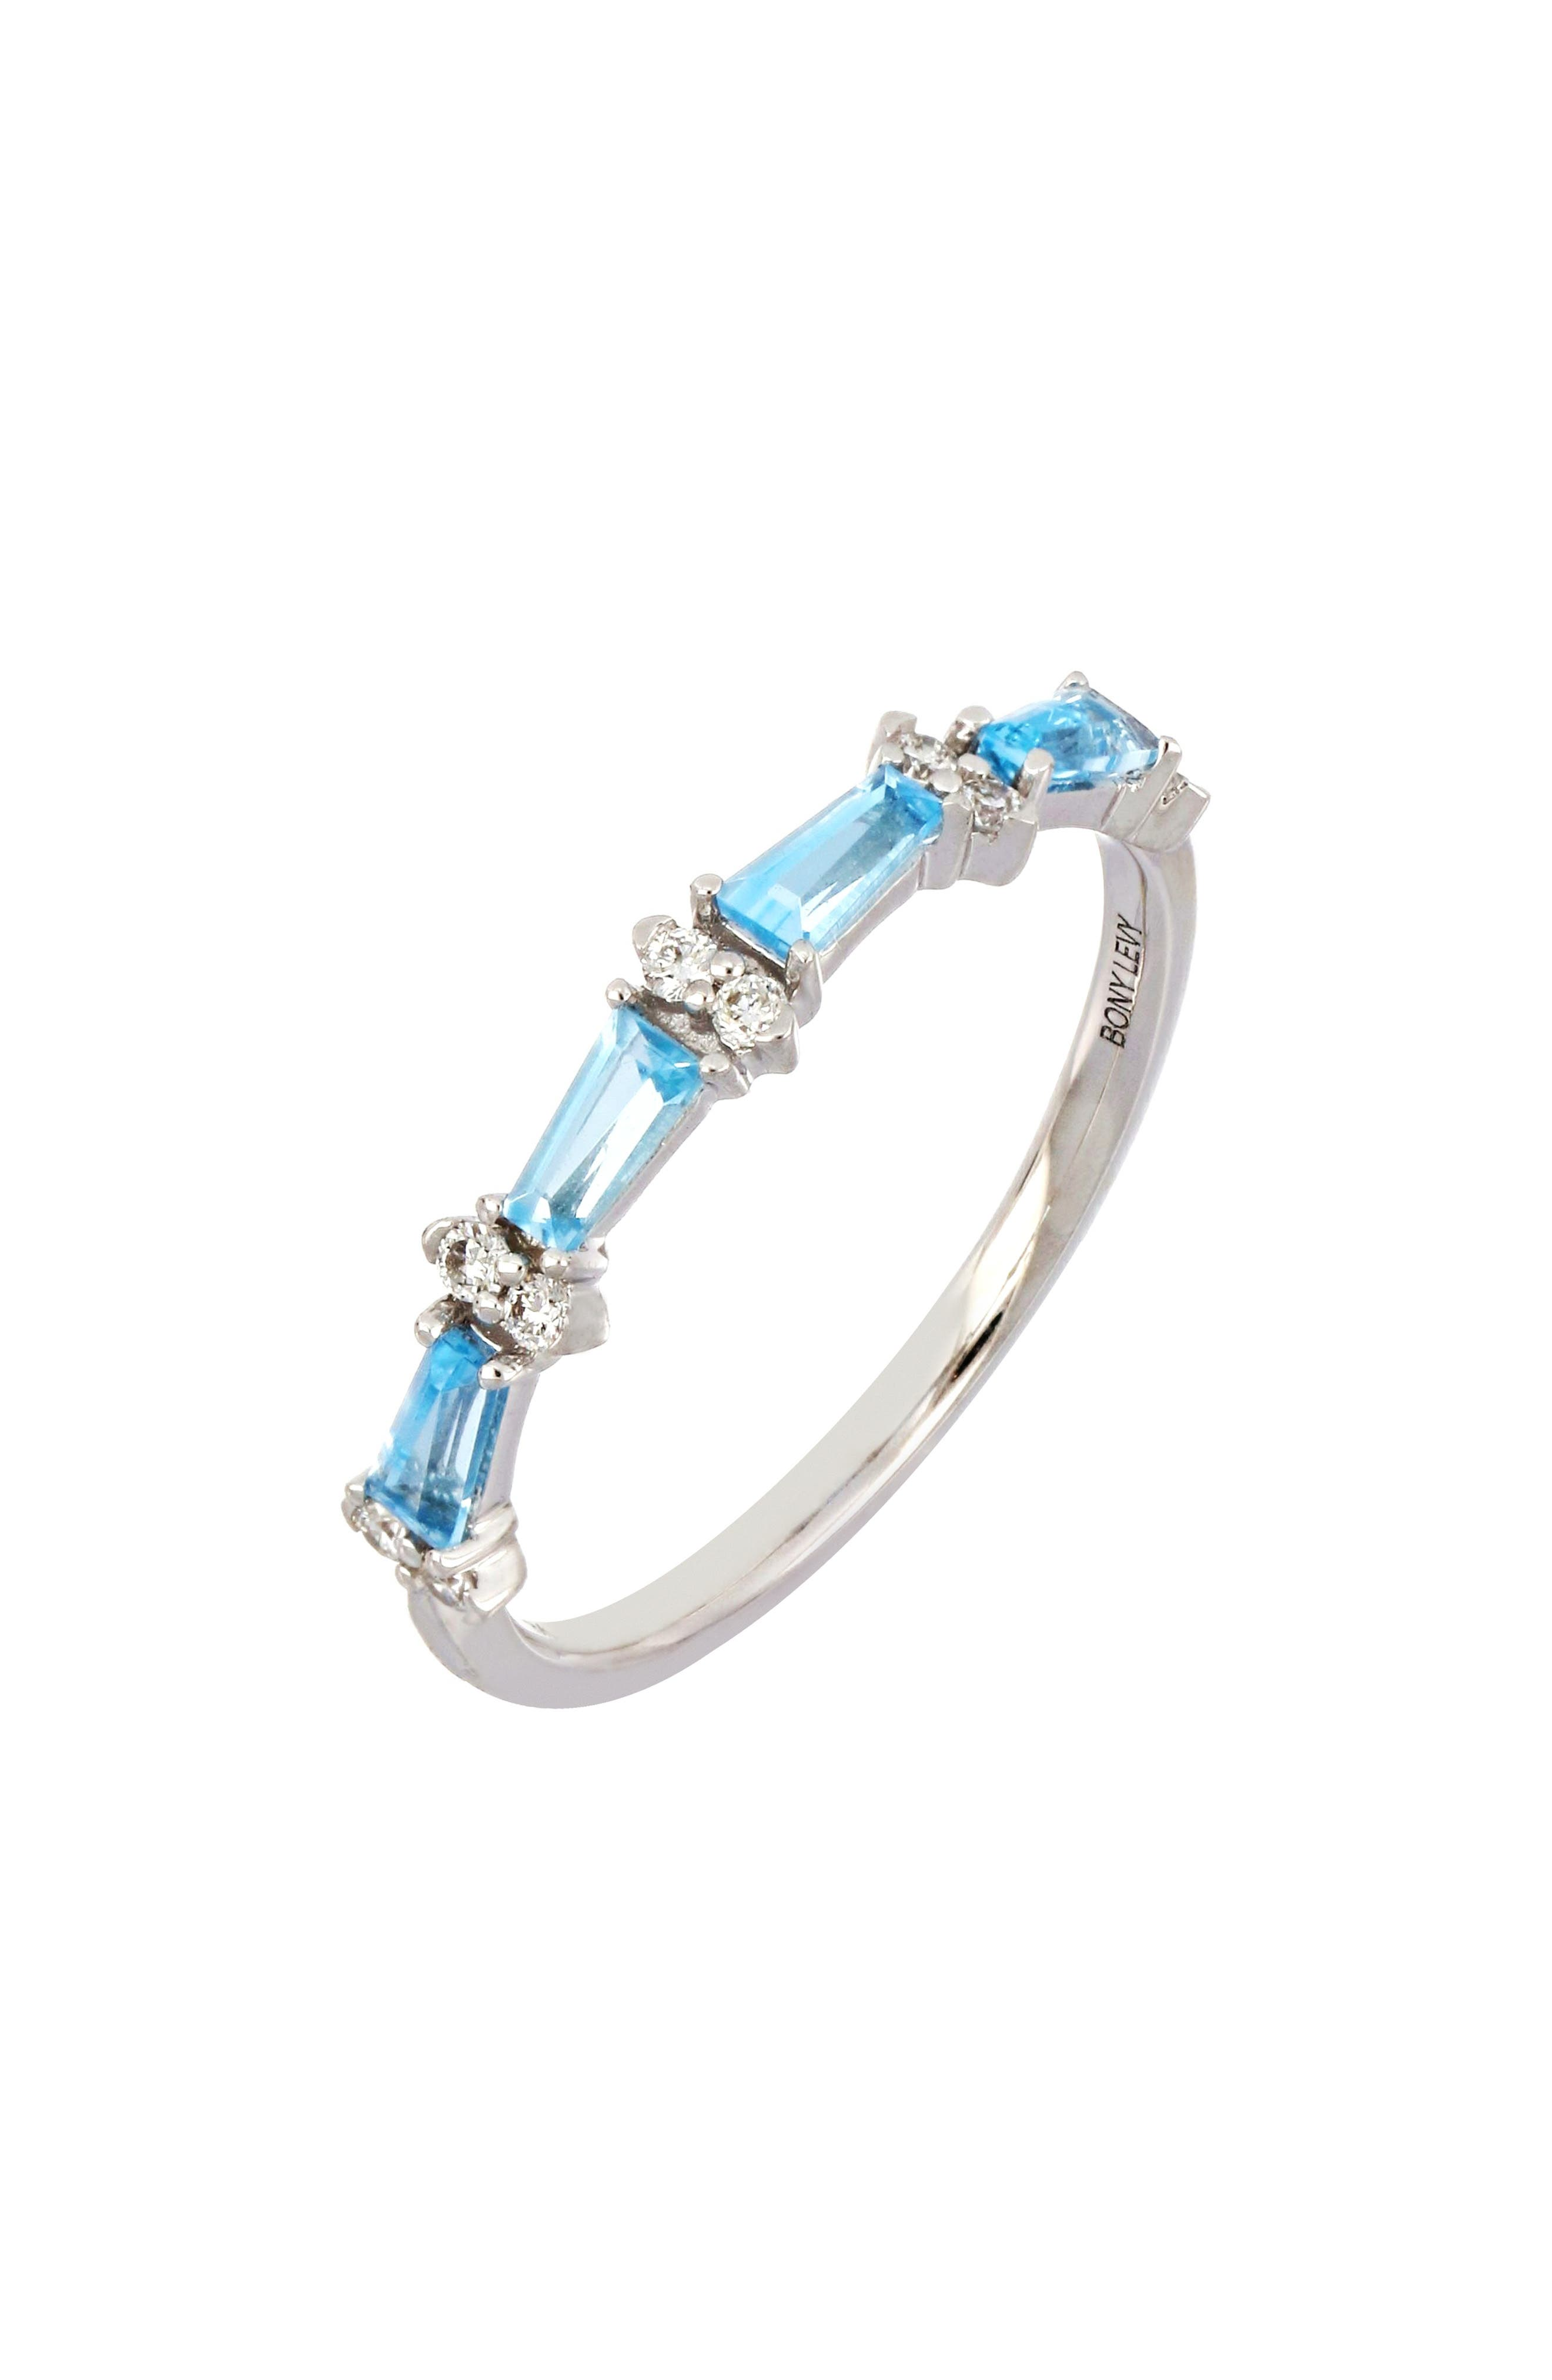 Alternating fancy-cut blue topaz and round diamonds bring delightful color and sparkle to this stackable band handcrafted in 18-karat white gold. Style Name: Bony Levy Blue Topaz & Diamond Stacking Ring (Nordstrom Exclusive). Style Number: 5981566. Available in stores.